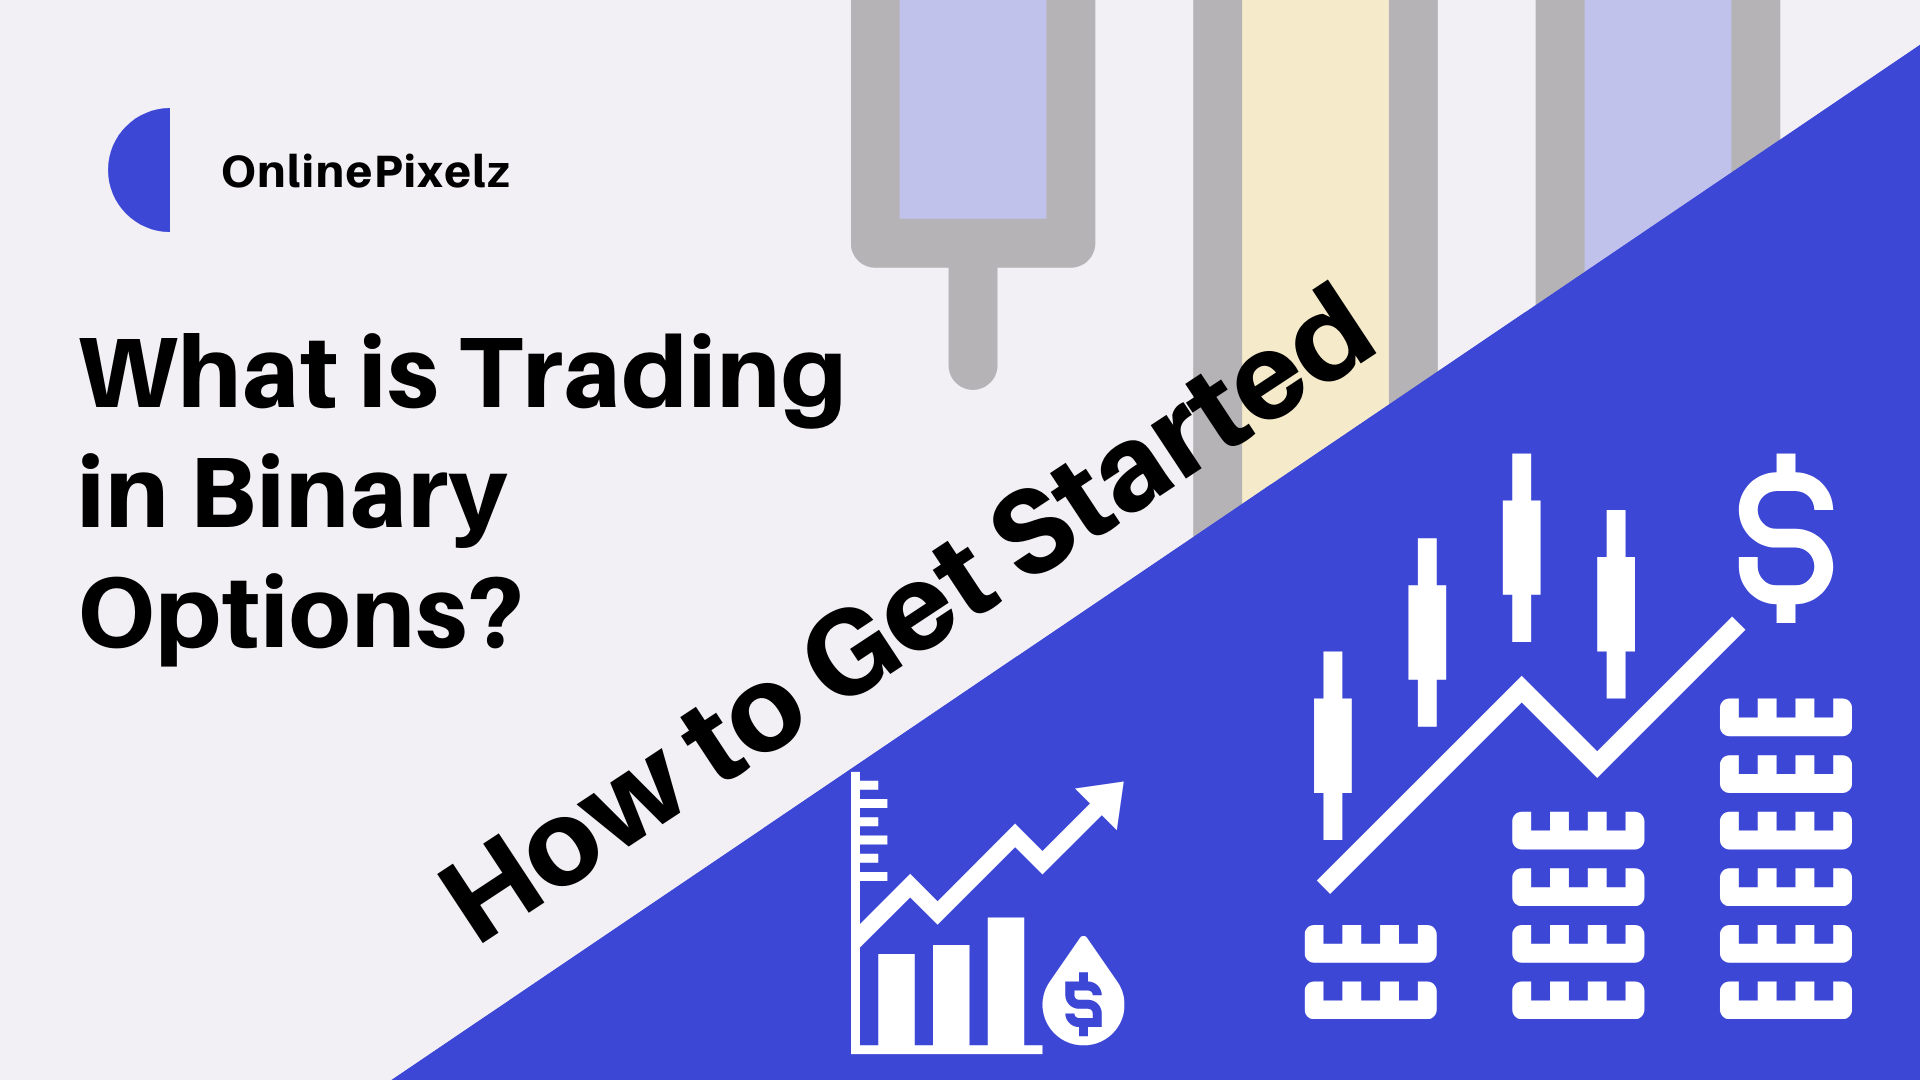 What is Trading in Binary Options